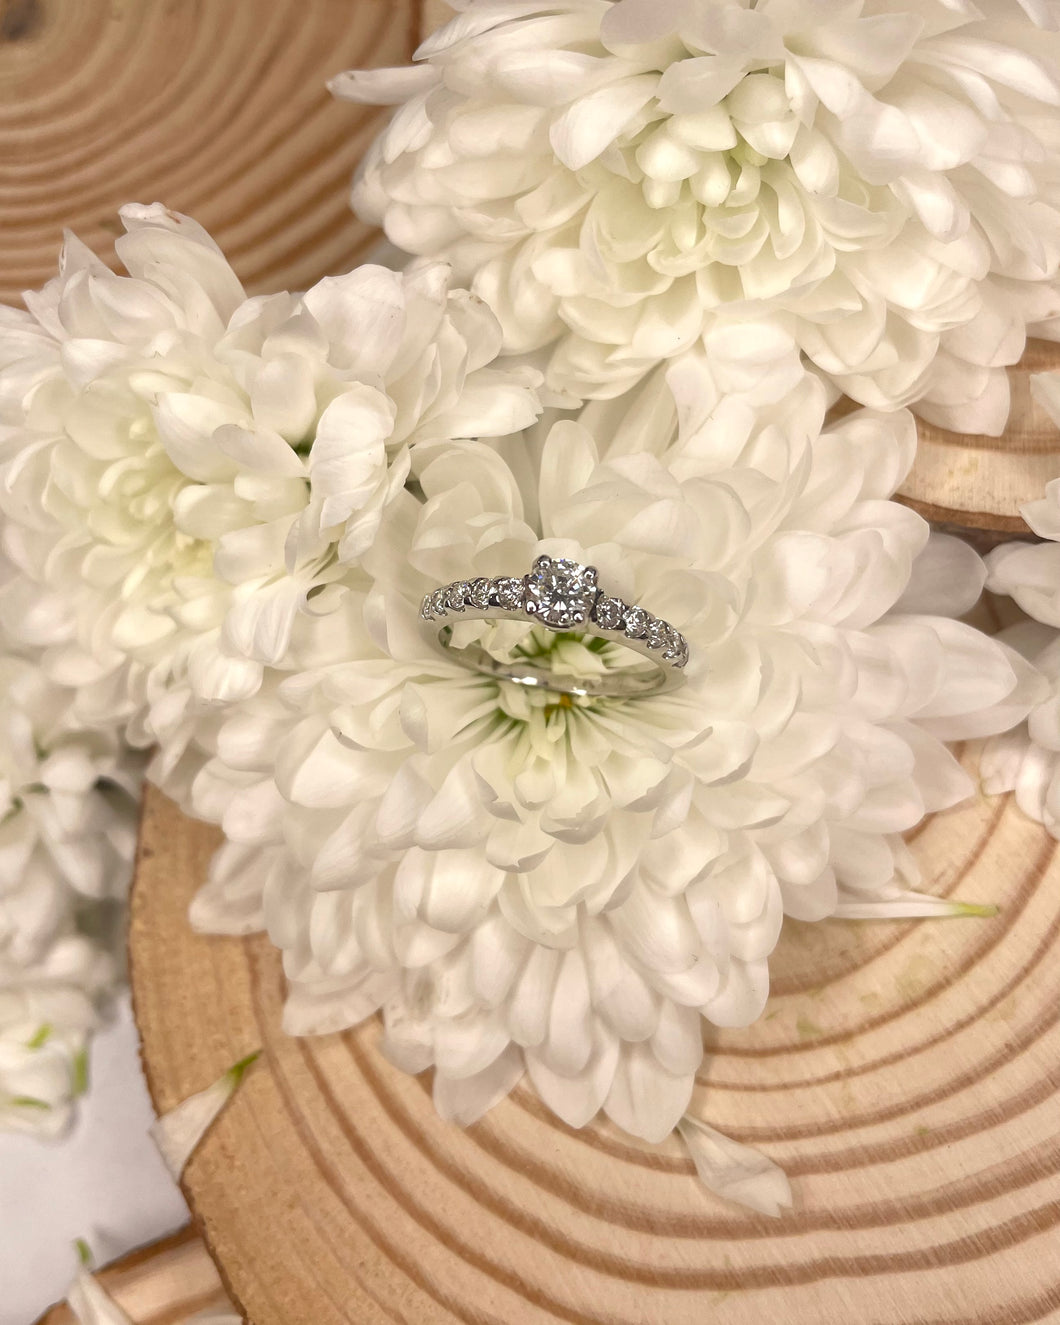 18ct Solitaire Diamond Engagement Ring with Diamond Shoulders